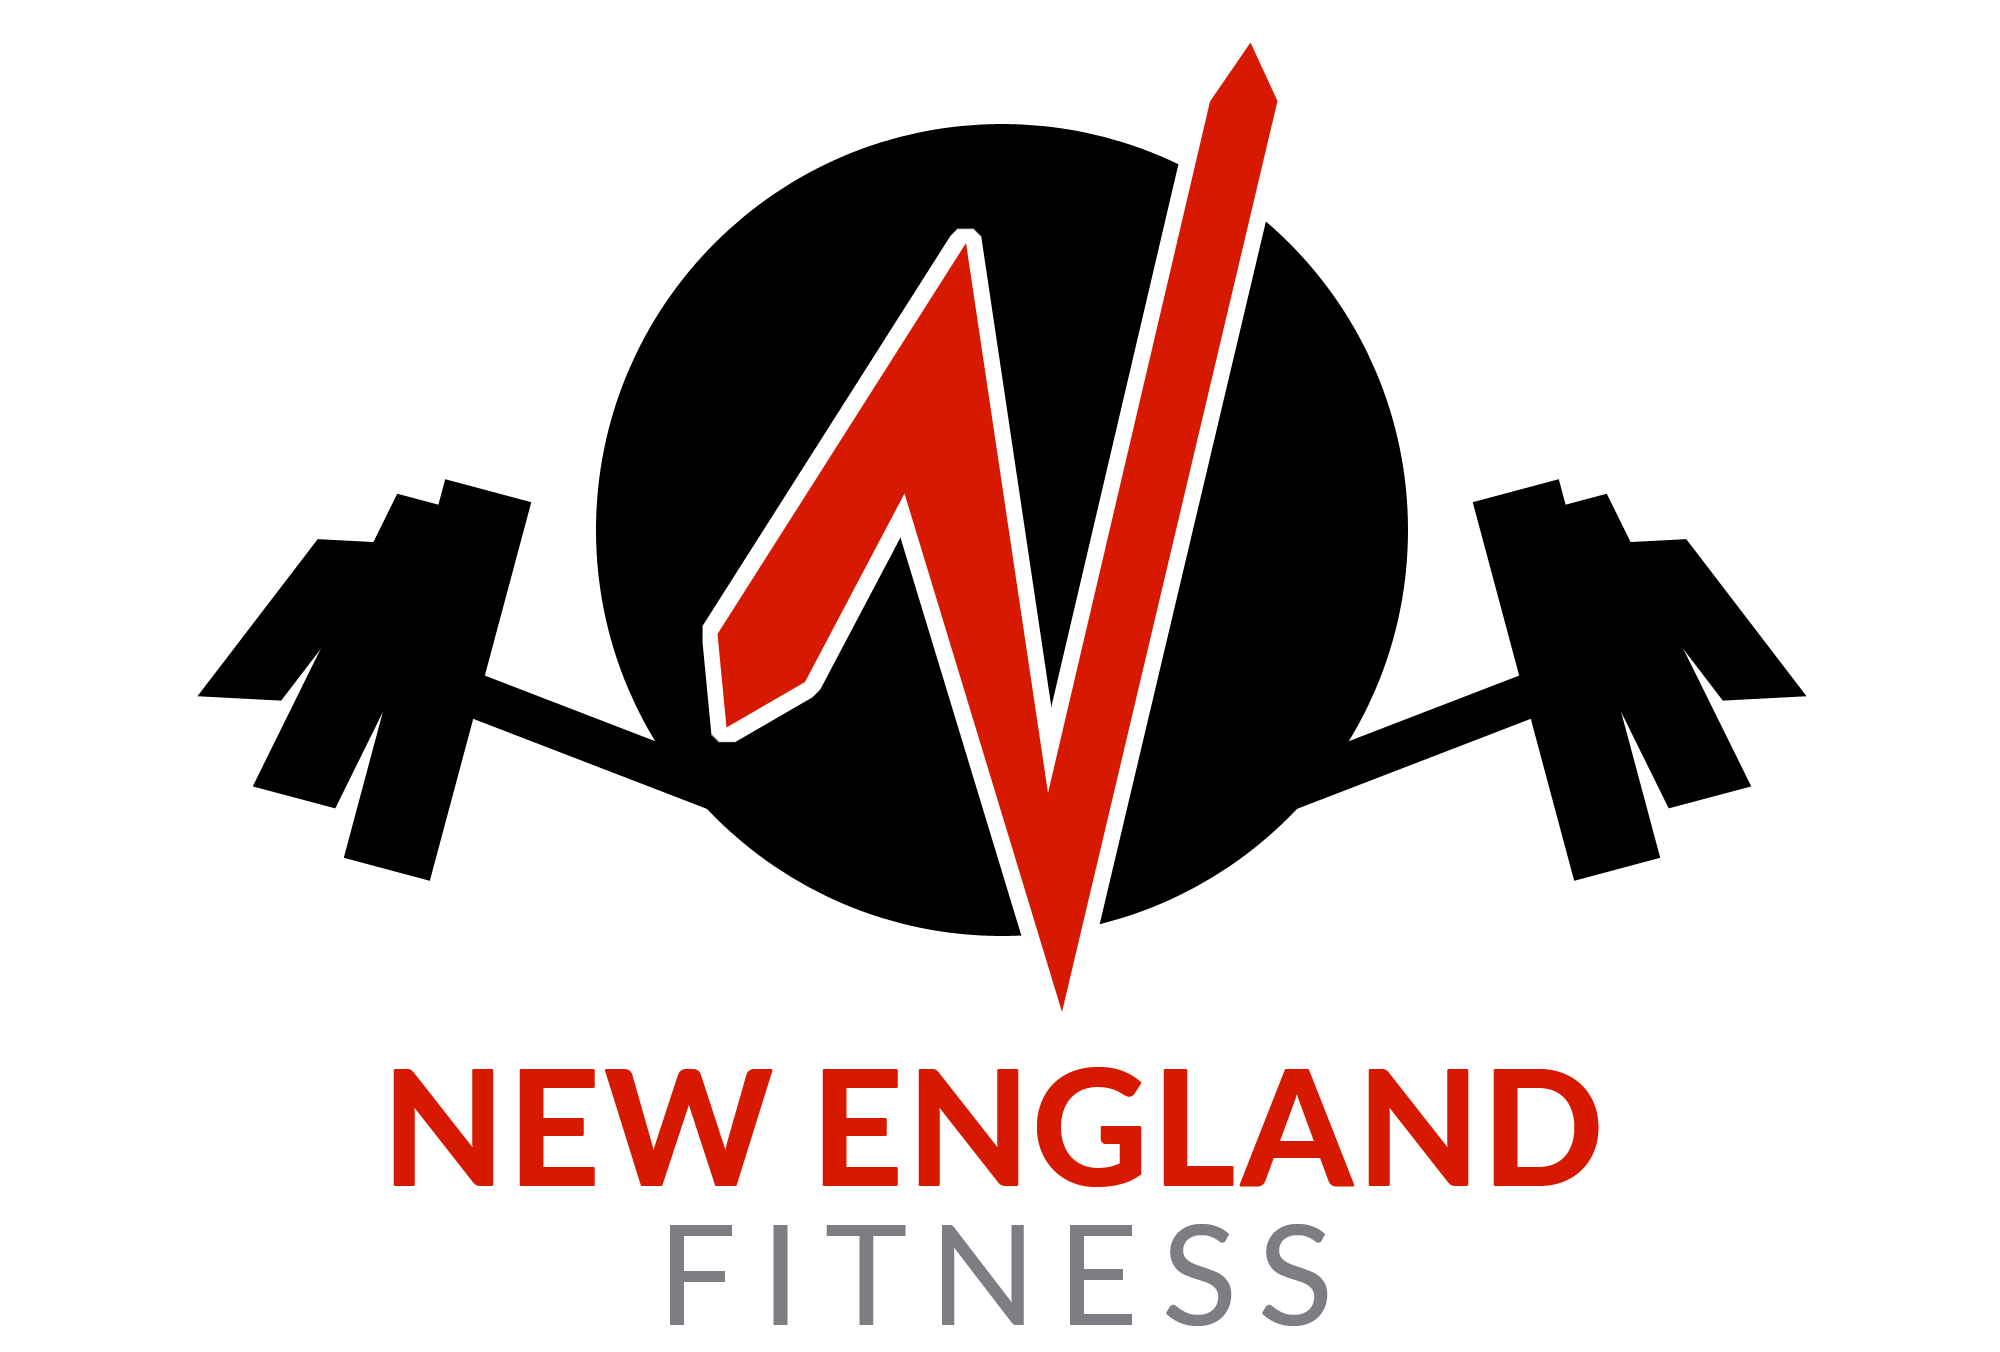 NEW-England-Fitness--Barbell-Black-Red